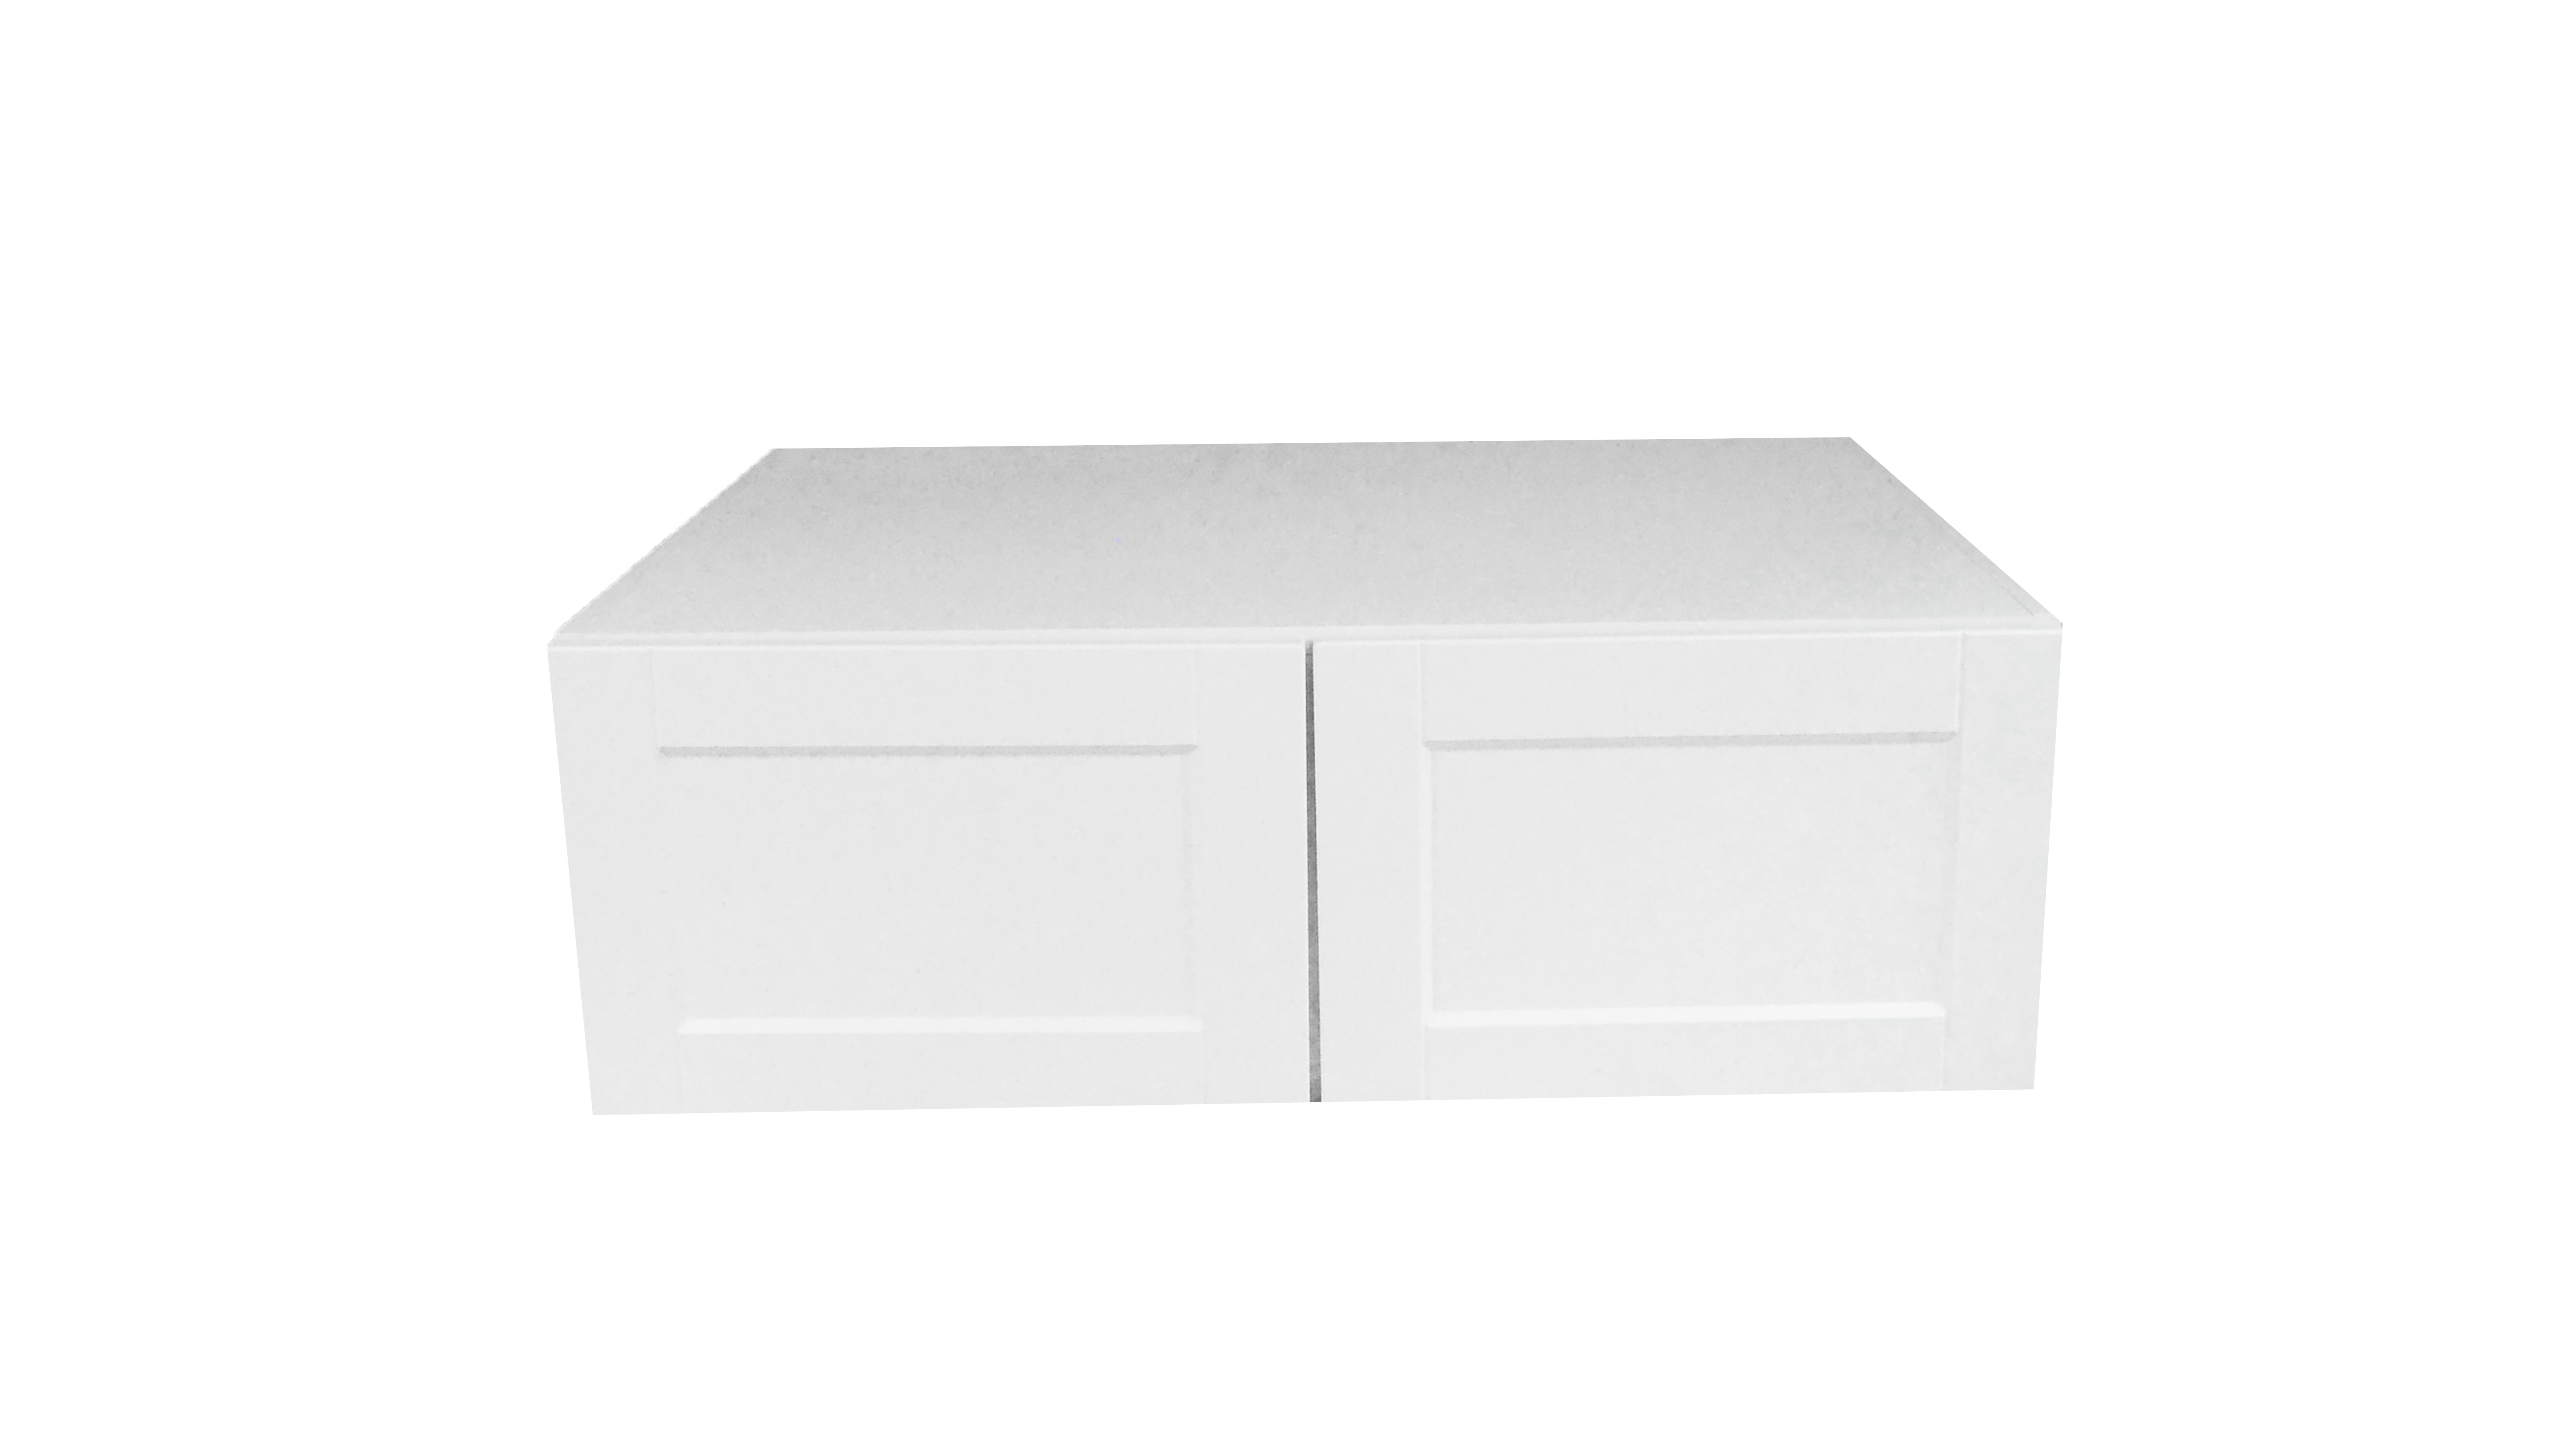 Deep Appliance Wall Cabinet / Flat Panel White / 30x15x24 Solaire White 0